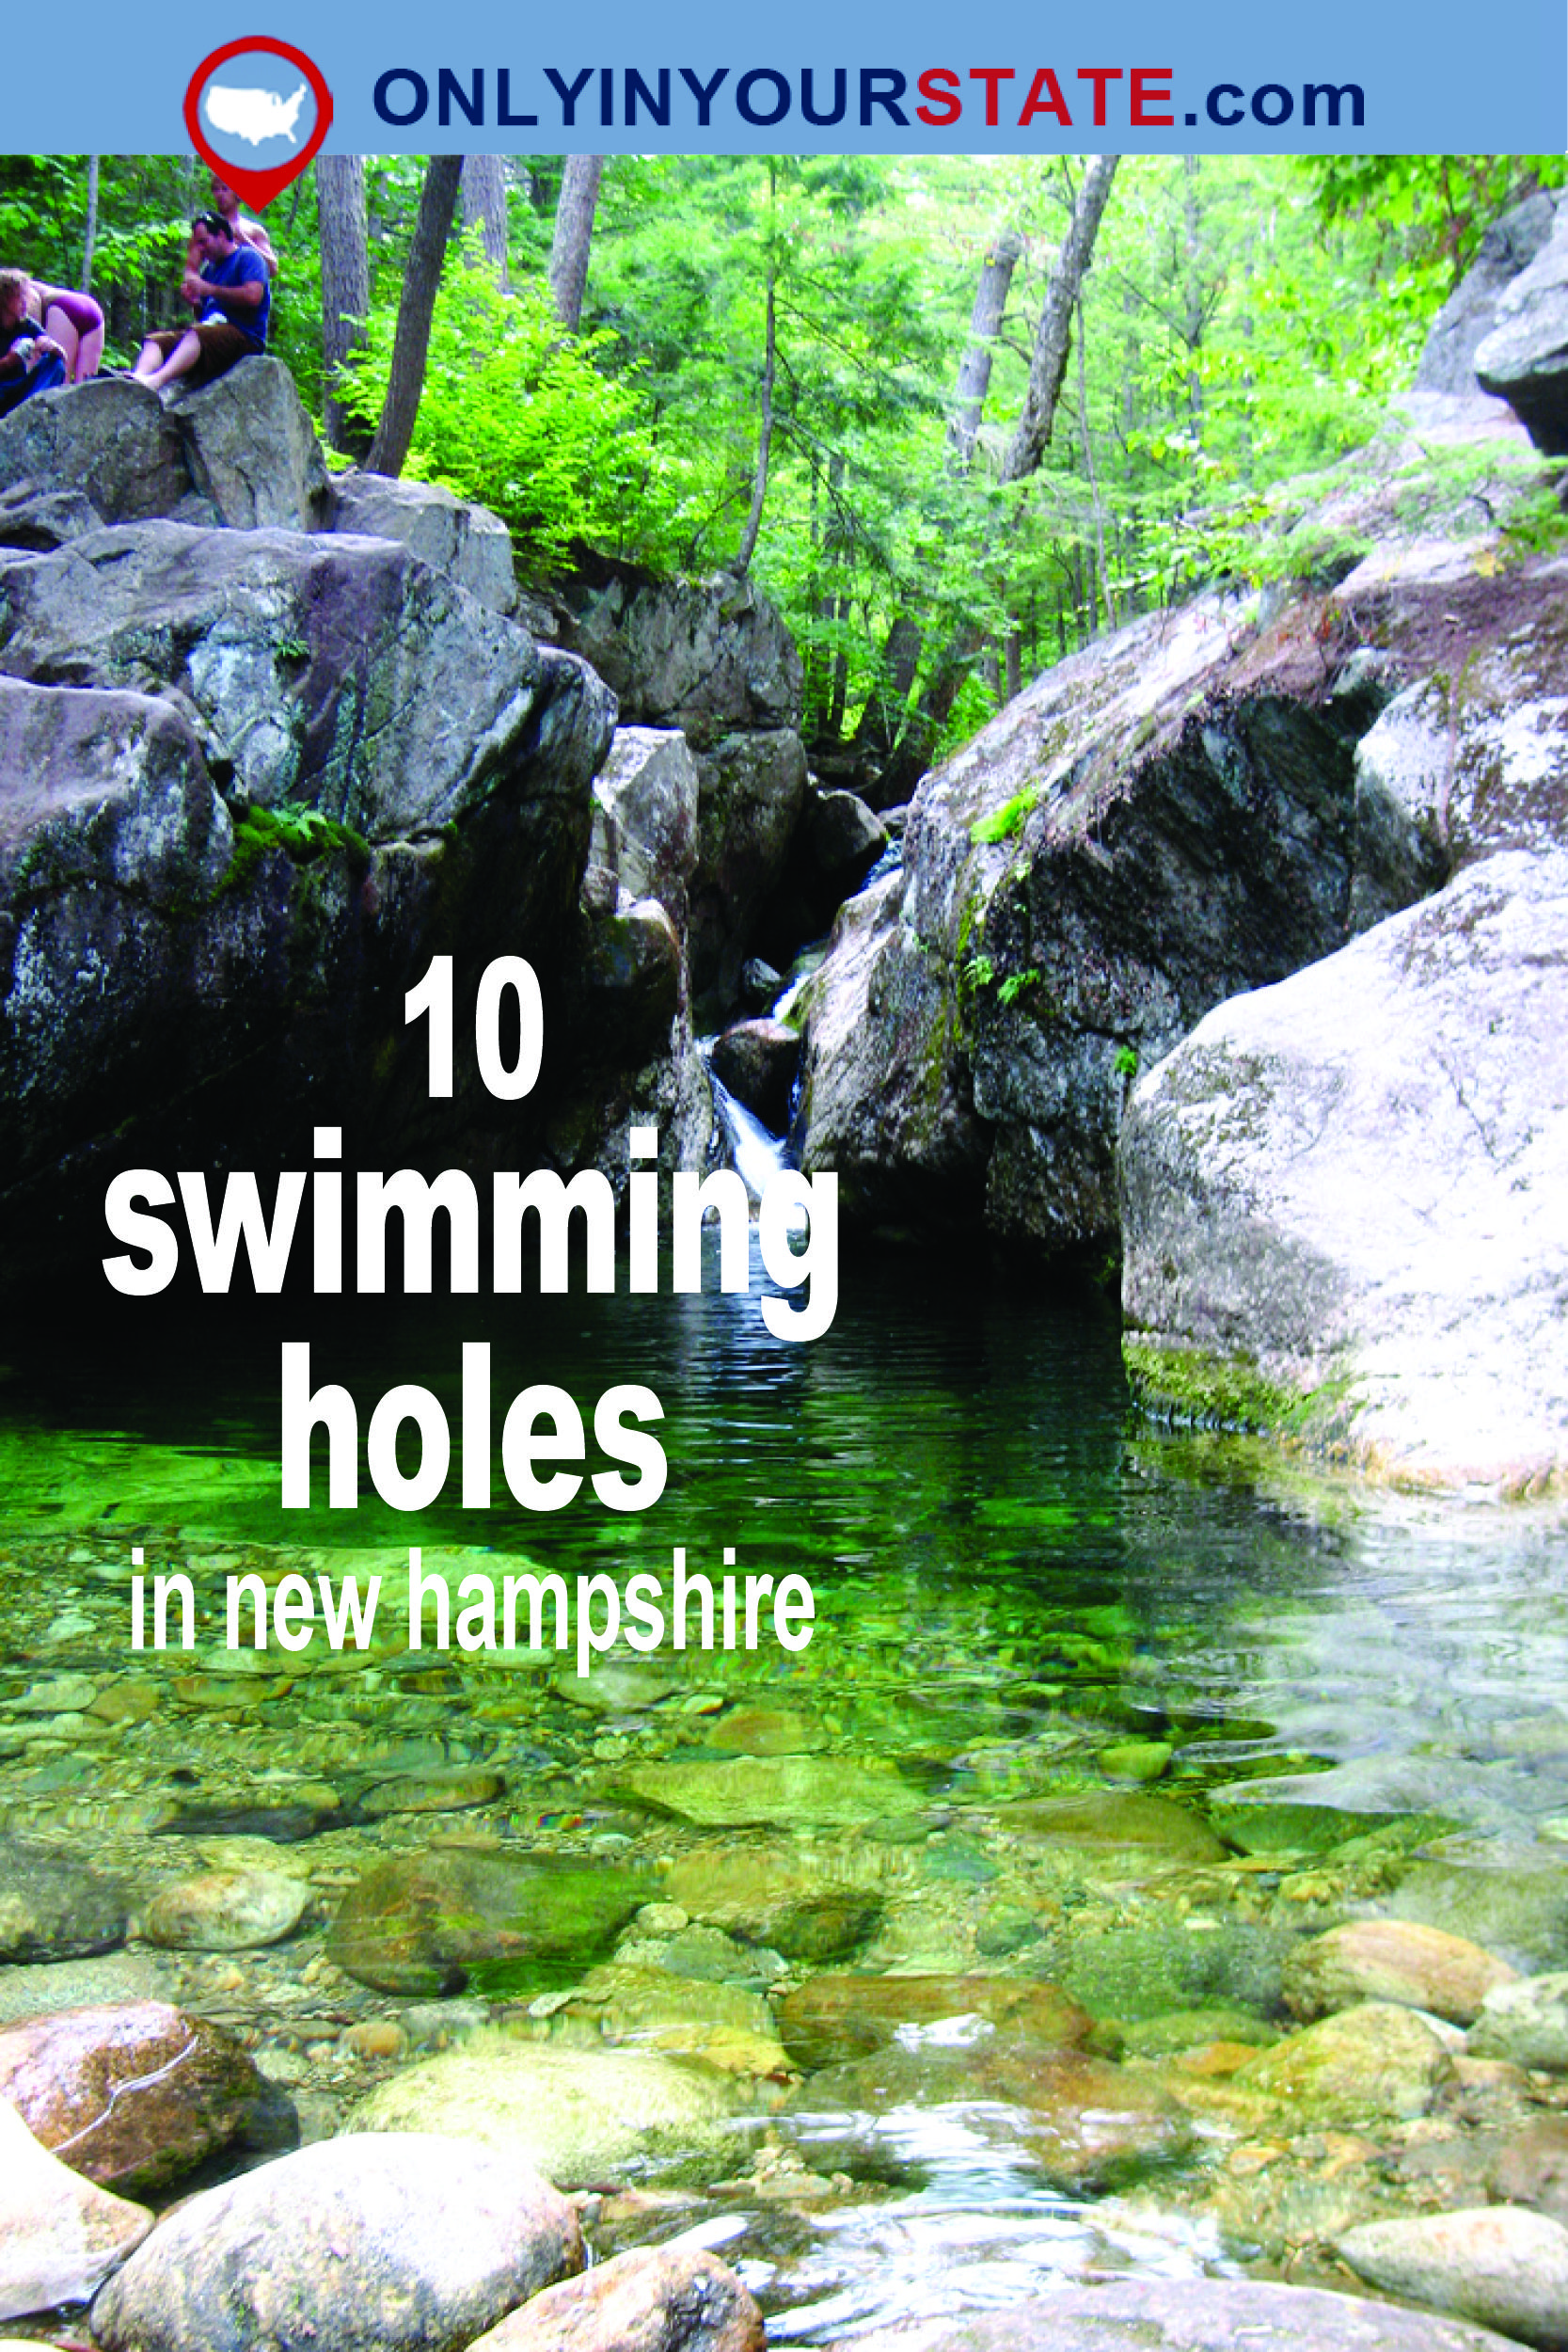 Here Are 10 Swimming Holes In New Hampshire That Will Make